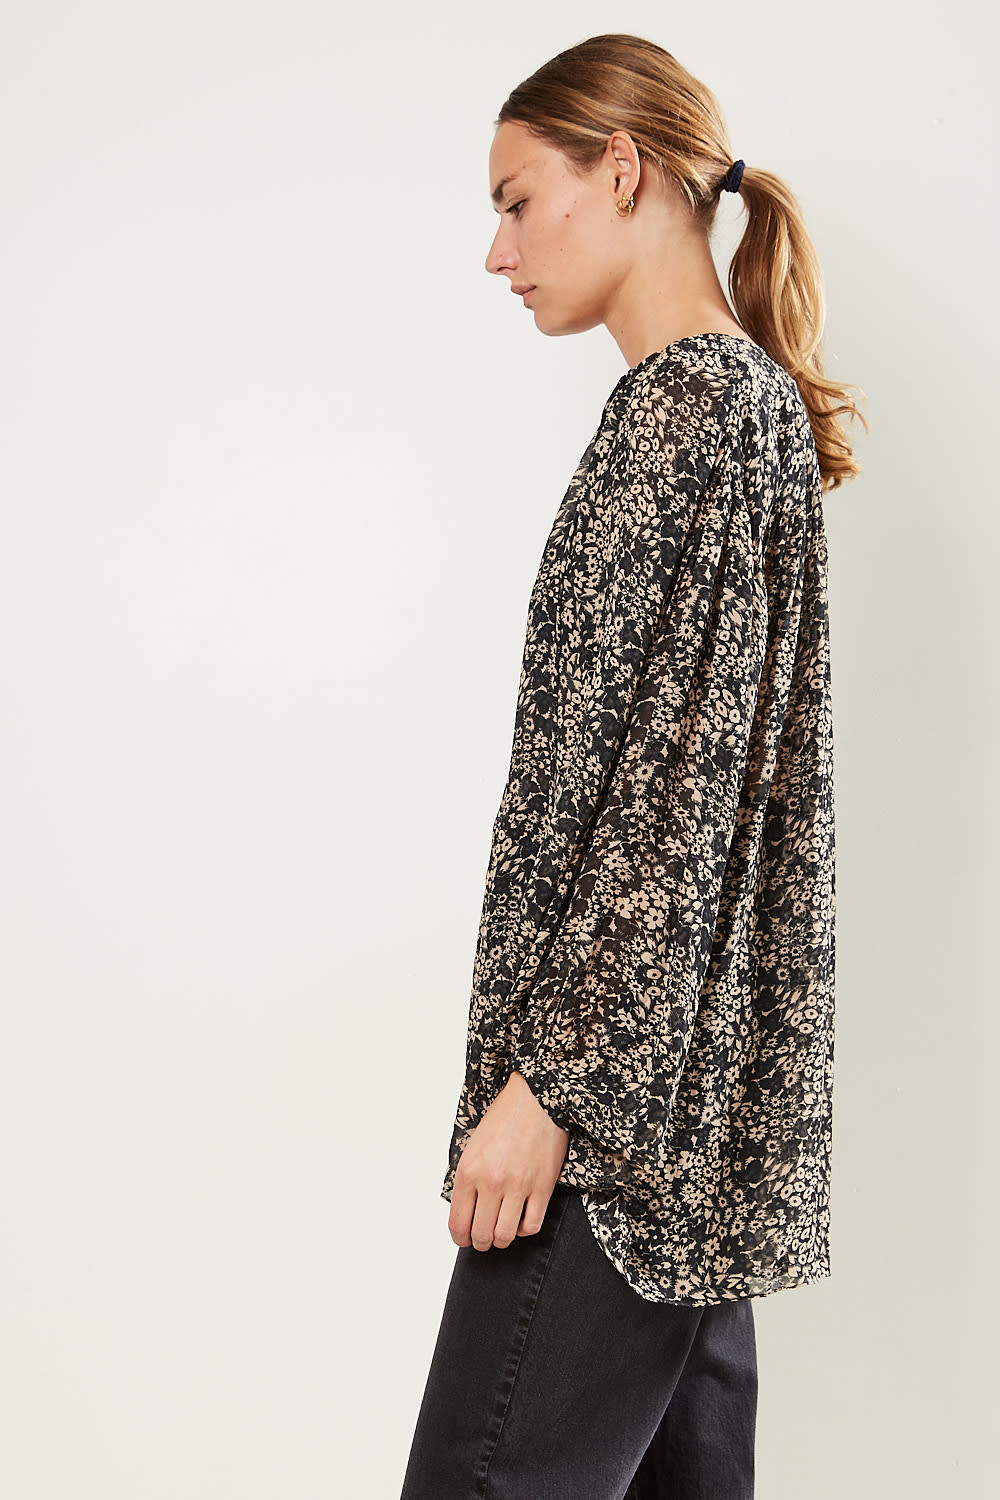 Etoile Isabel Marant - Liliana printed georgette top